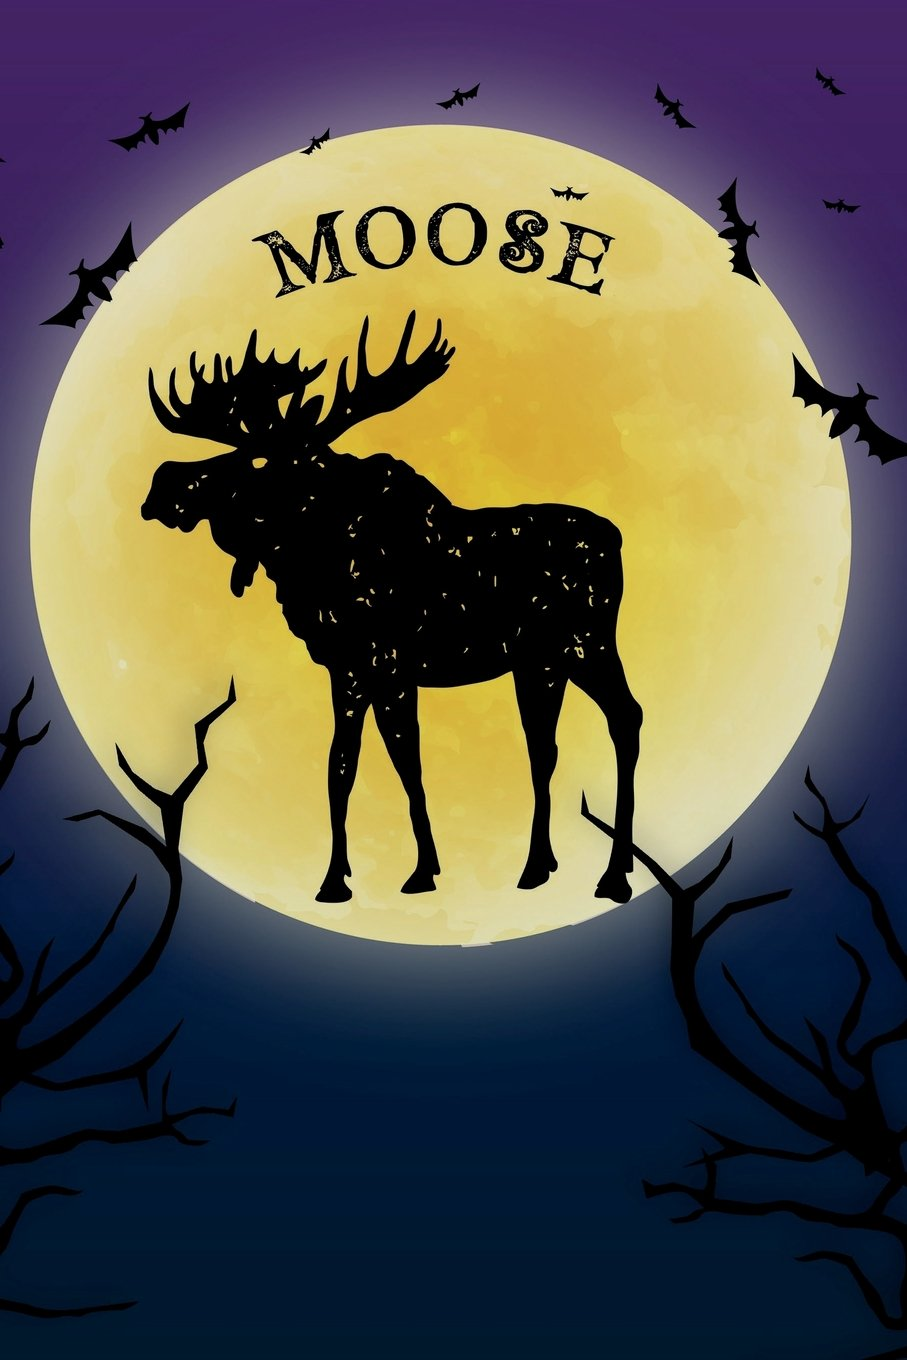 Download Moose Notebook Halloween Journal: Spooky Halloween Themed Blank Lined Composition Book/Diary/Journal For Moose Lovers, 6 x 9, 130 Pages, Full Moon, Bats, Scary Trees pdf epub